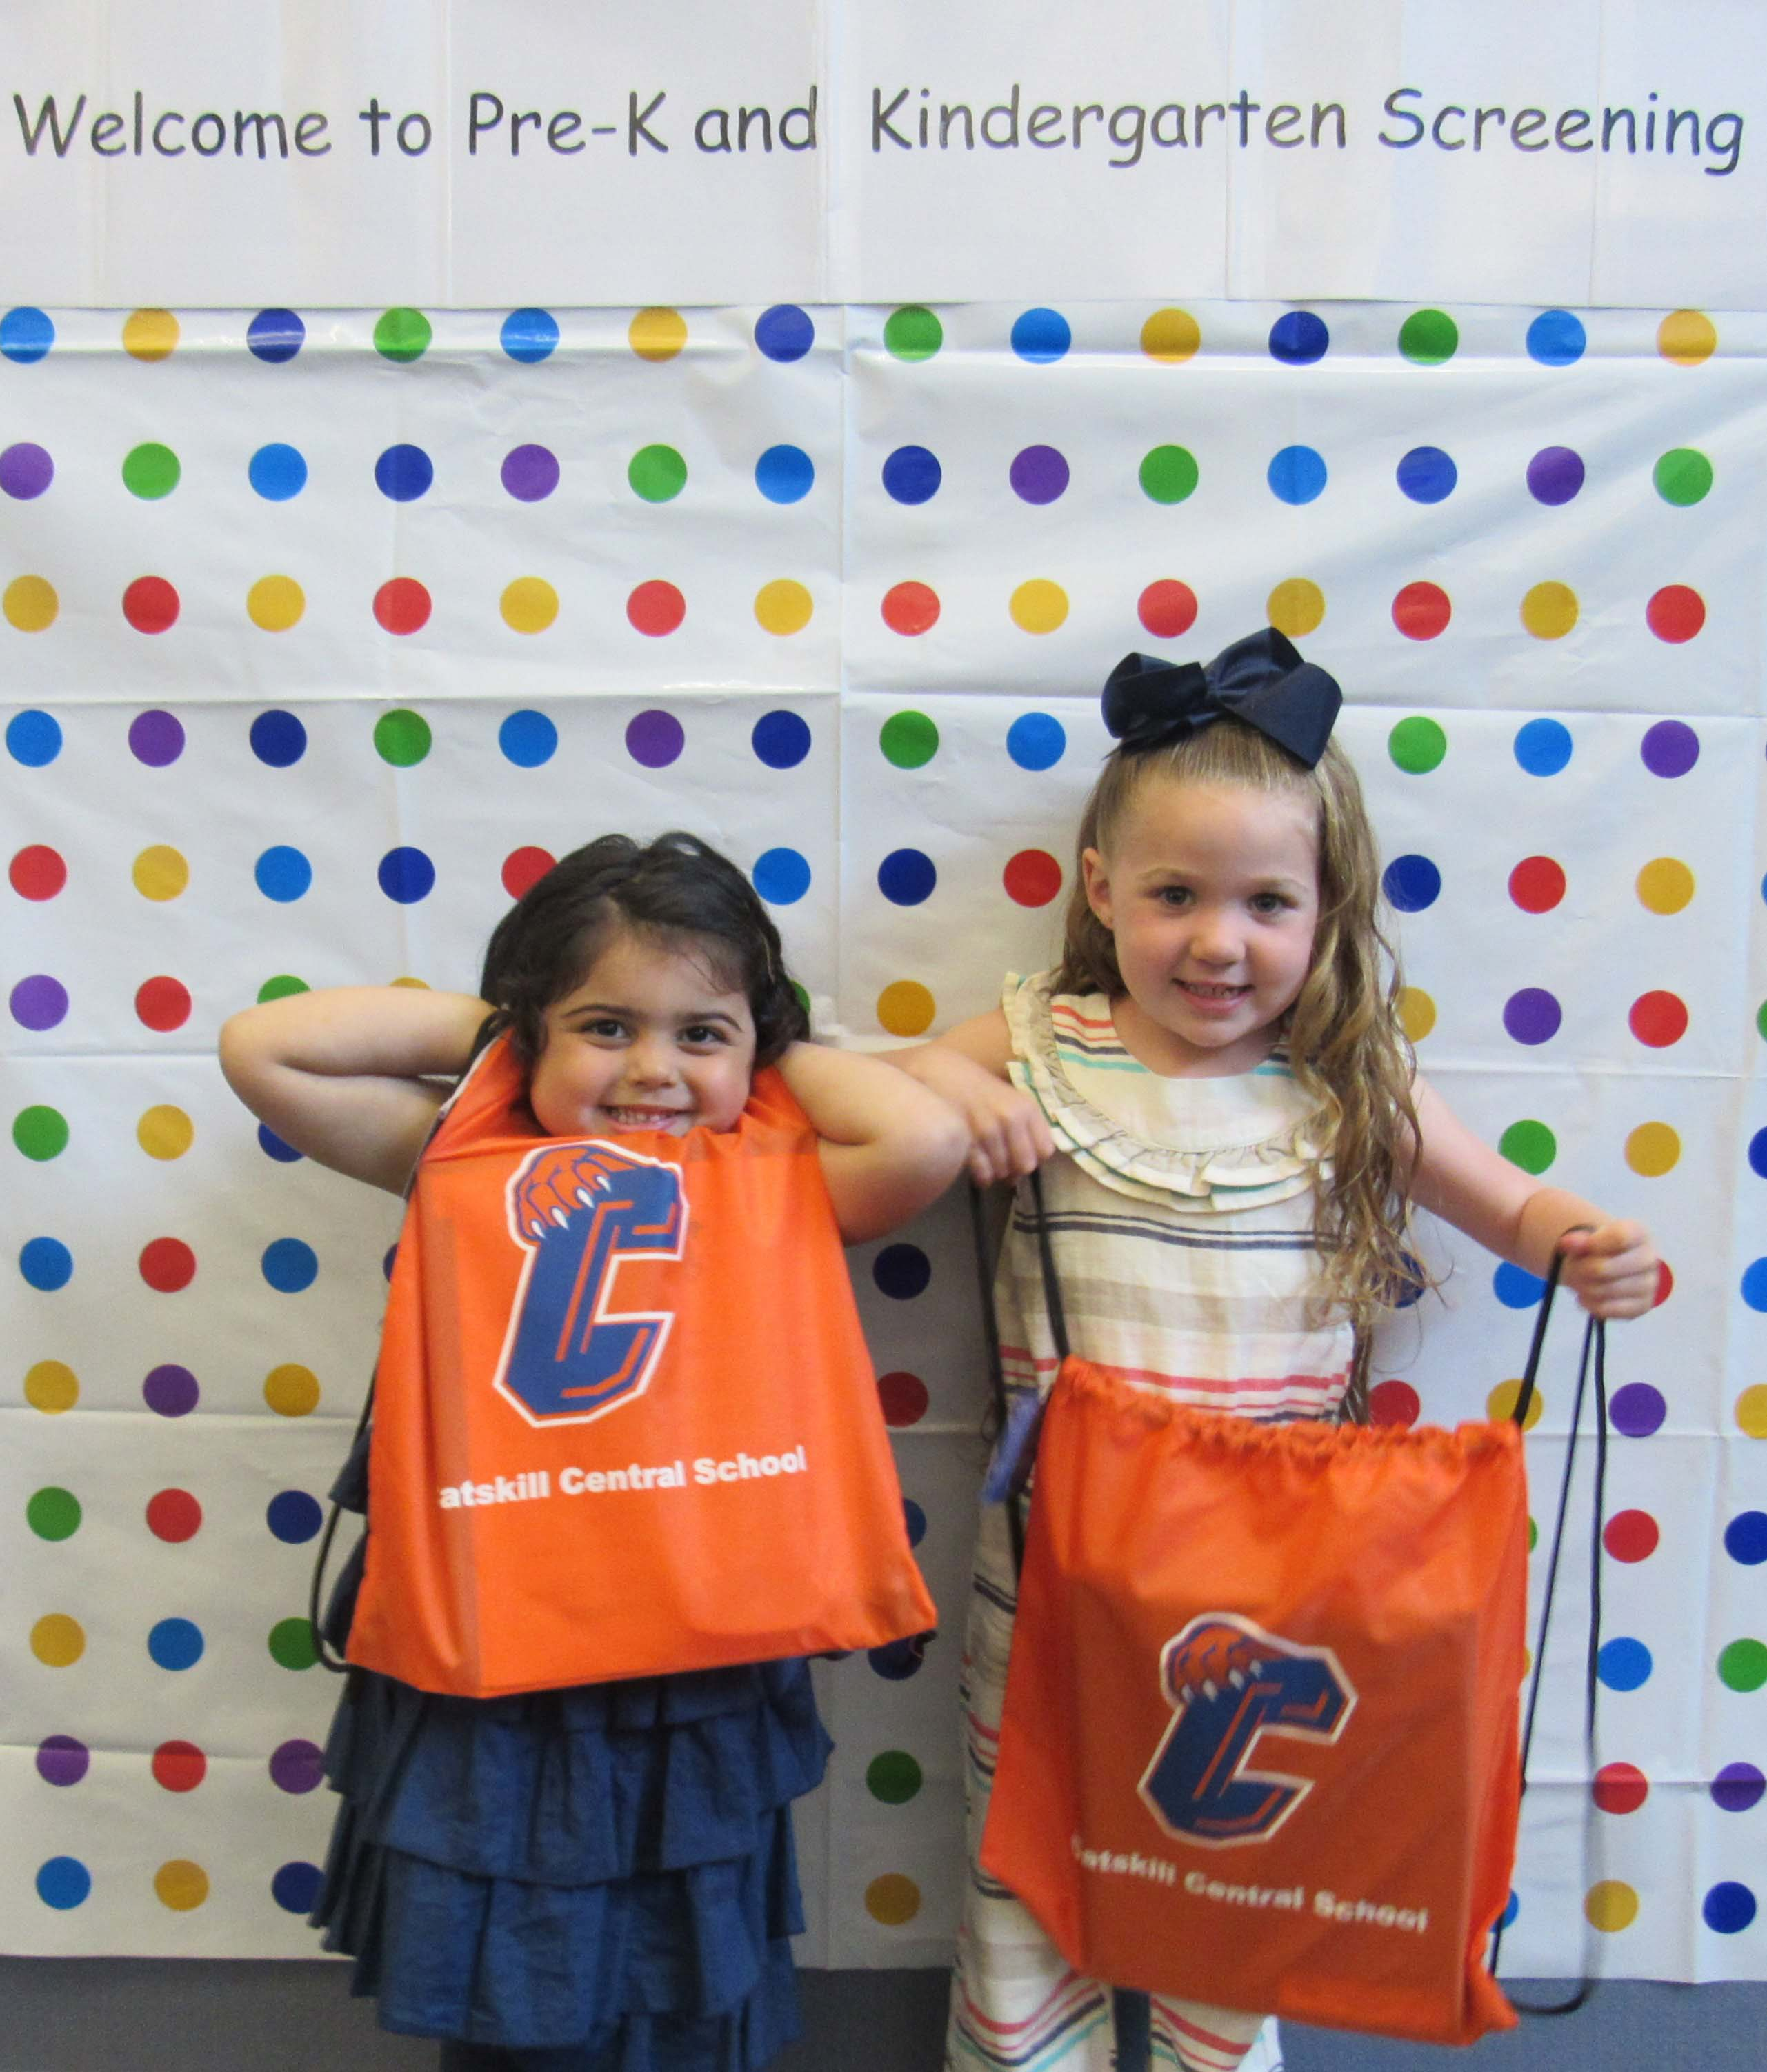 two girls holding Catskill CSD bags